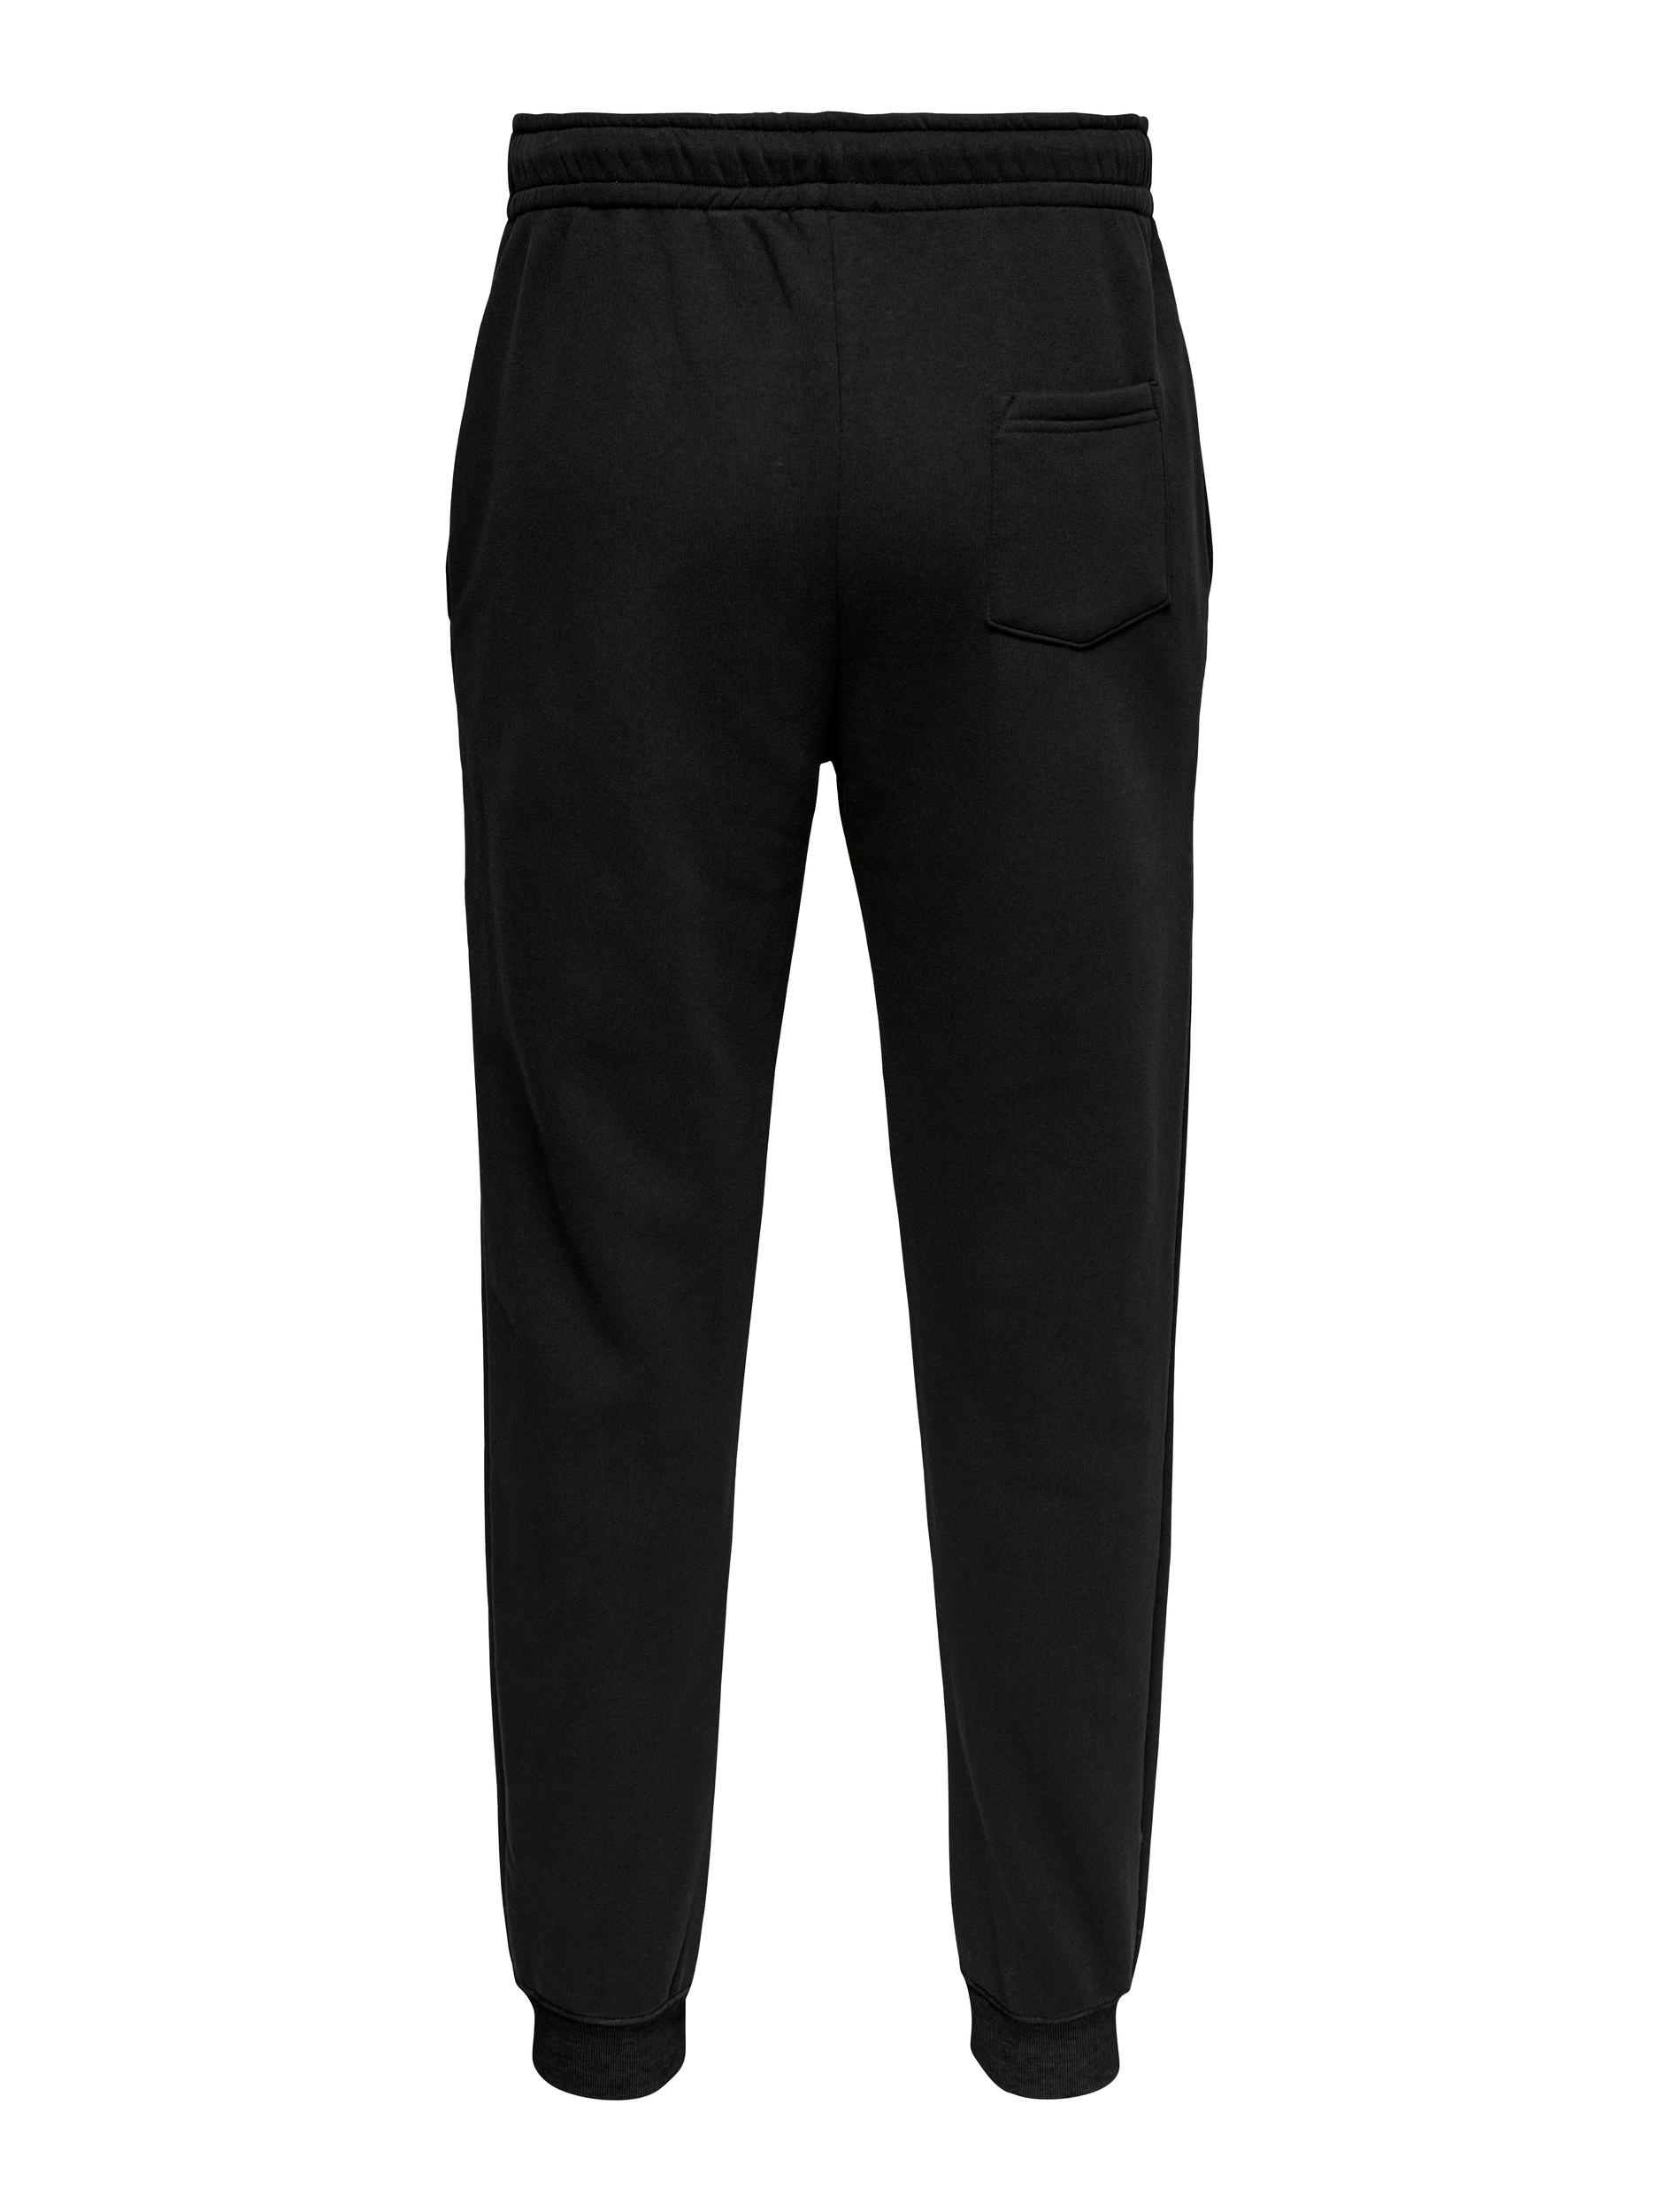 Only & Sons Ceres Life sweatpants, black, small